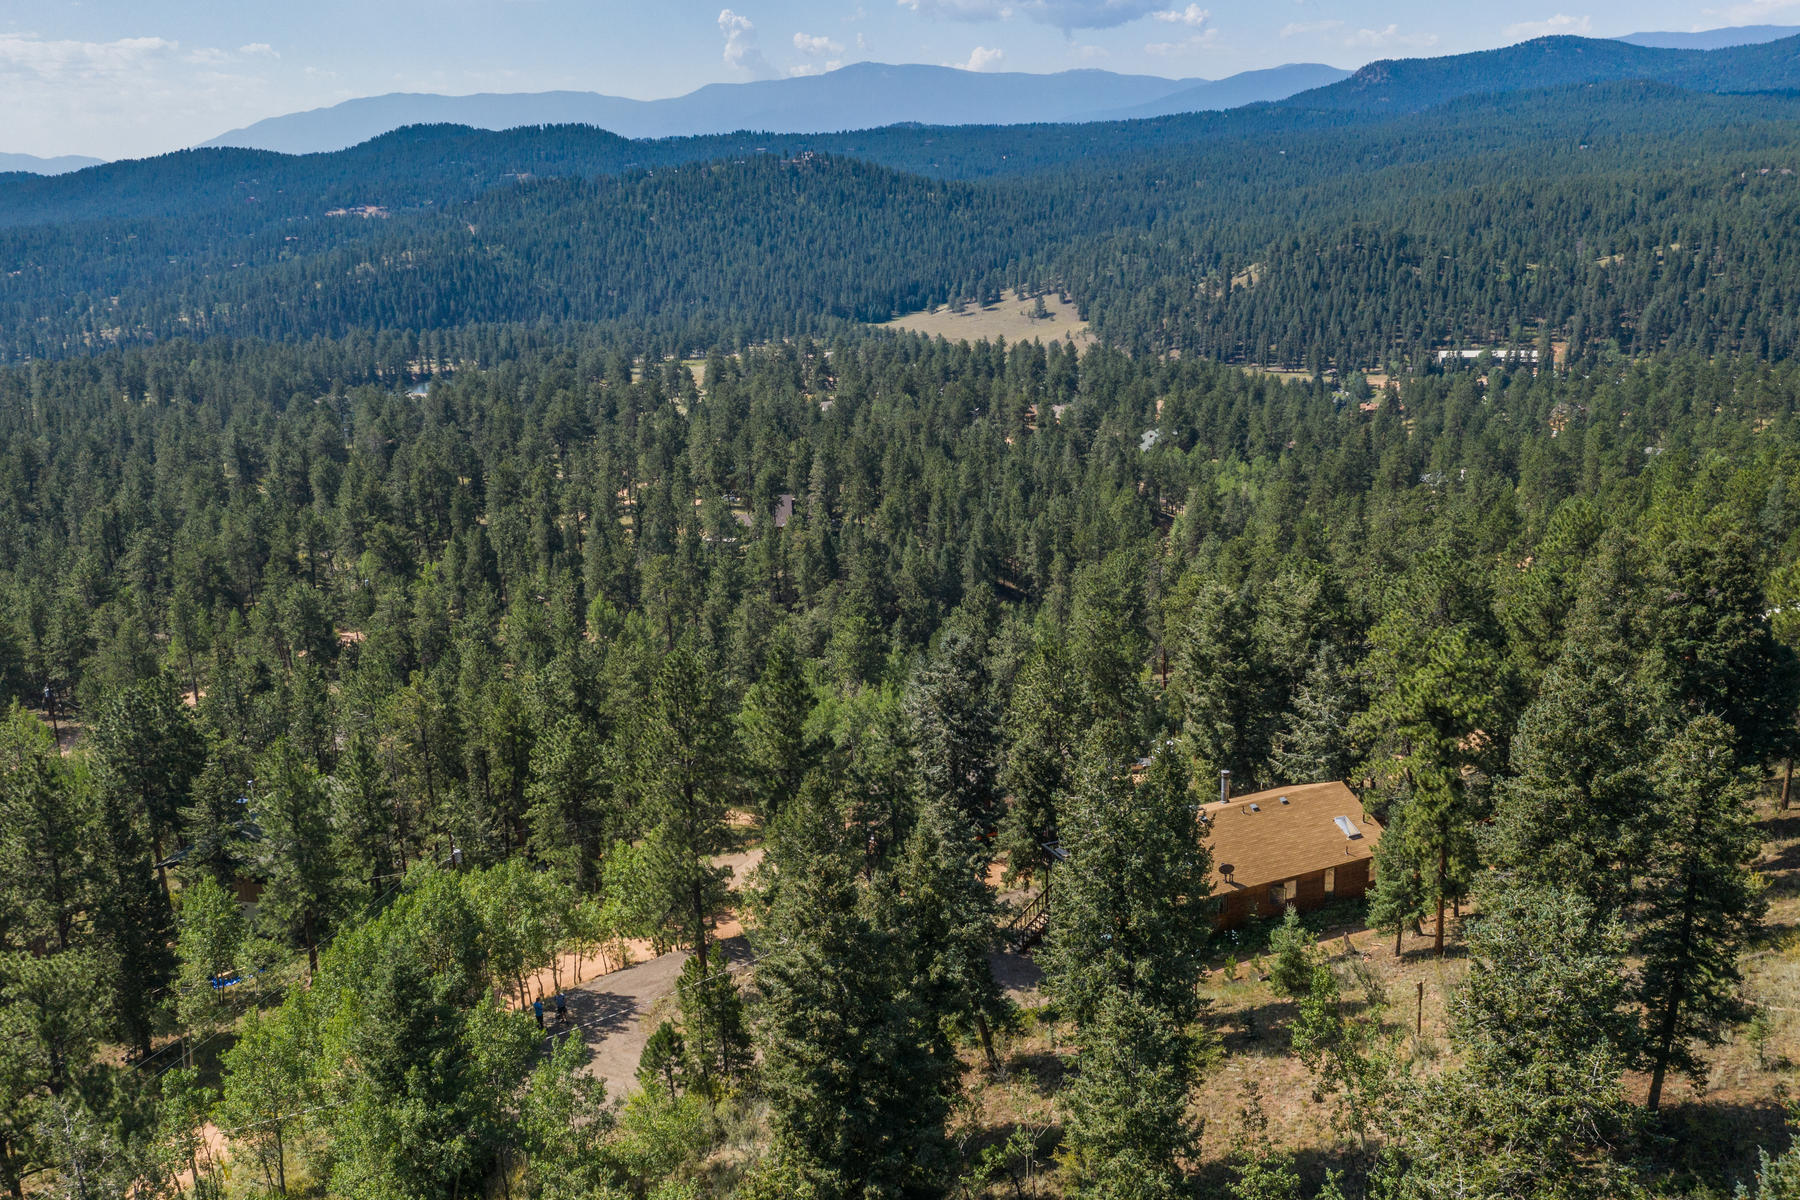 Single Family Homes for Active at Nestled in the pines your mountain home retreat! 34139 Berg Lane Pine, Colorado 80470 United States